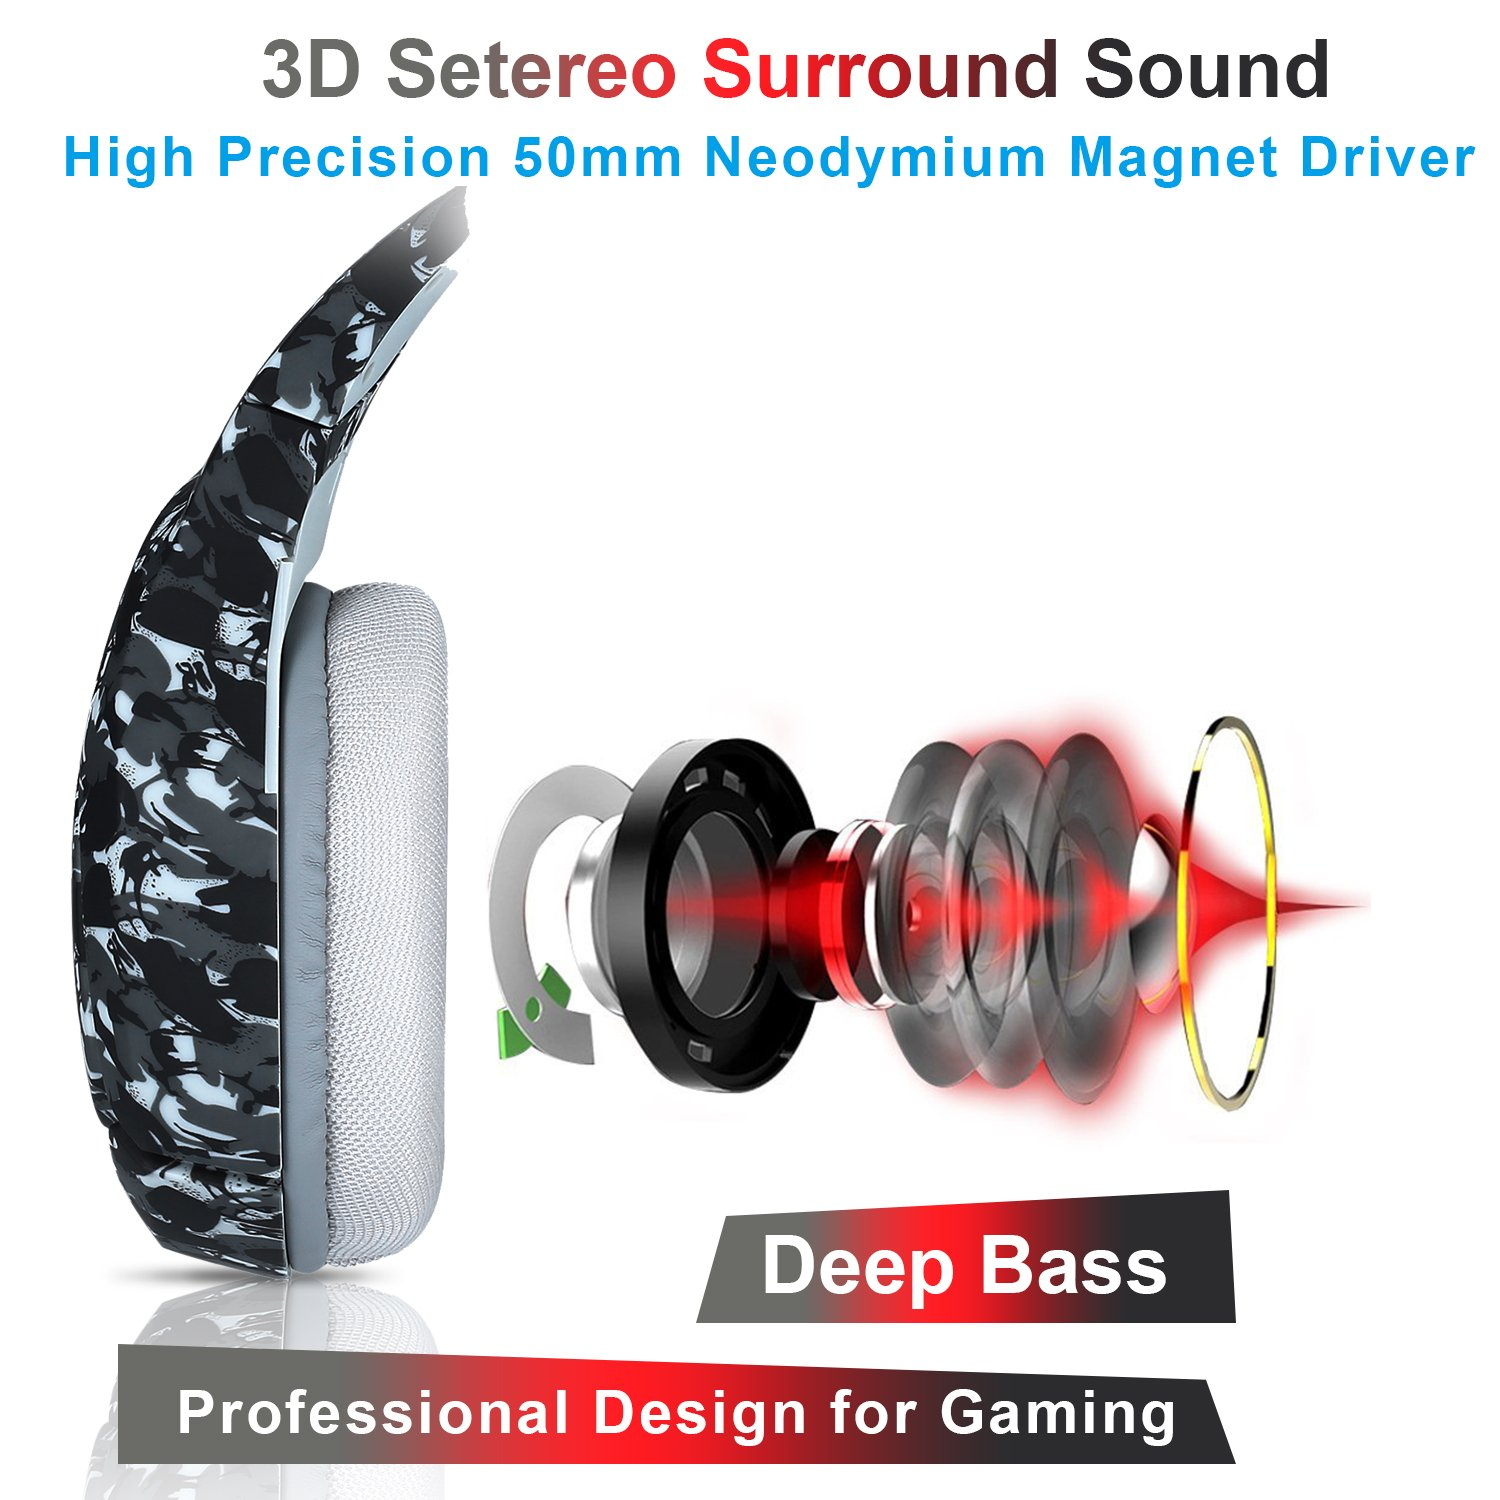 ONIKUMA PS4 Gaming Headset Camouflage 3.5mm Stereo Gaming Headphones with Noise Canceling Mic For xbox one S PC PS4 Smartphones Laptop Computer (Grey)